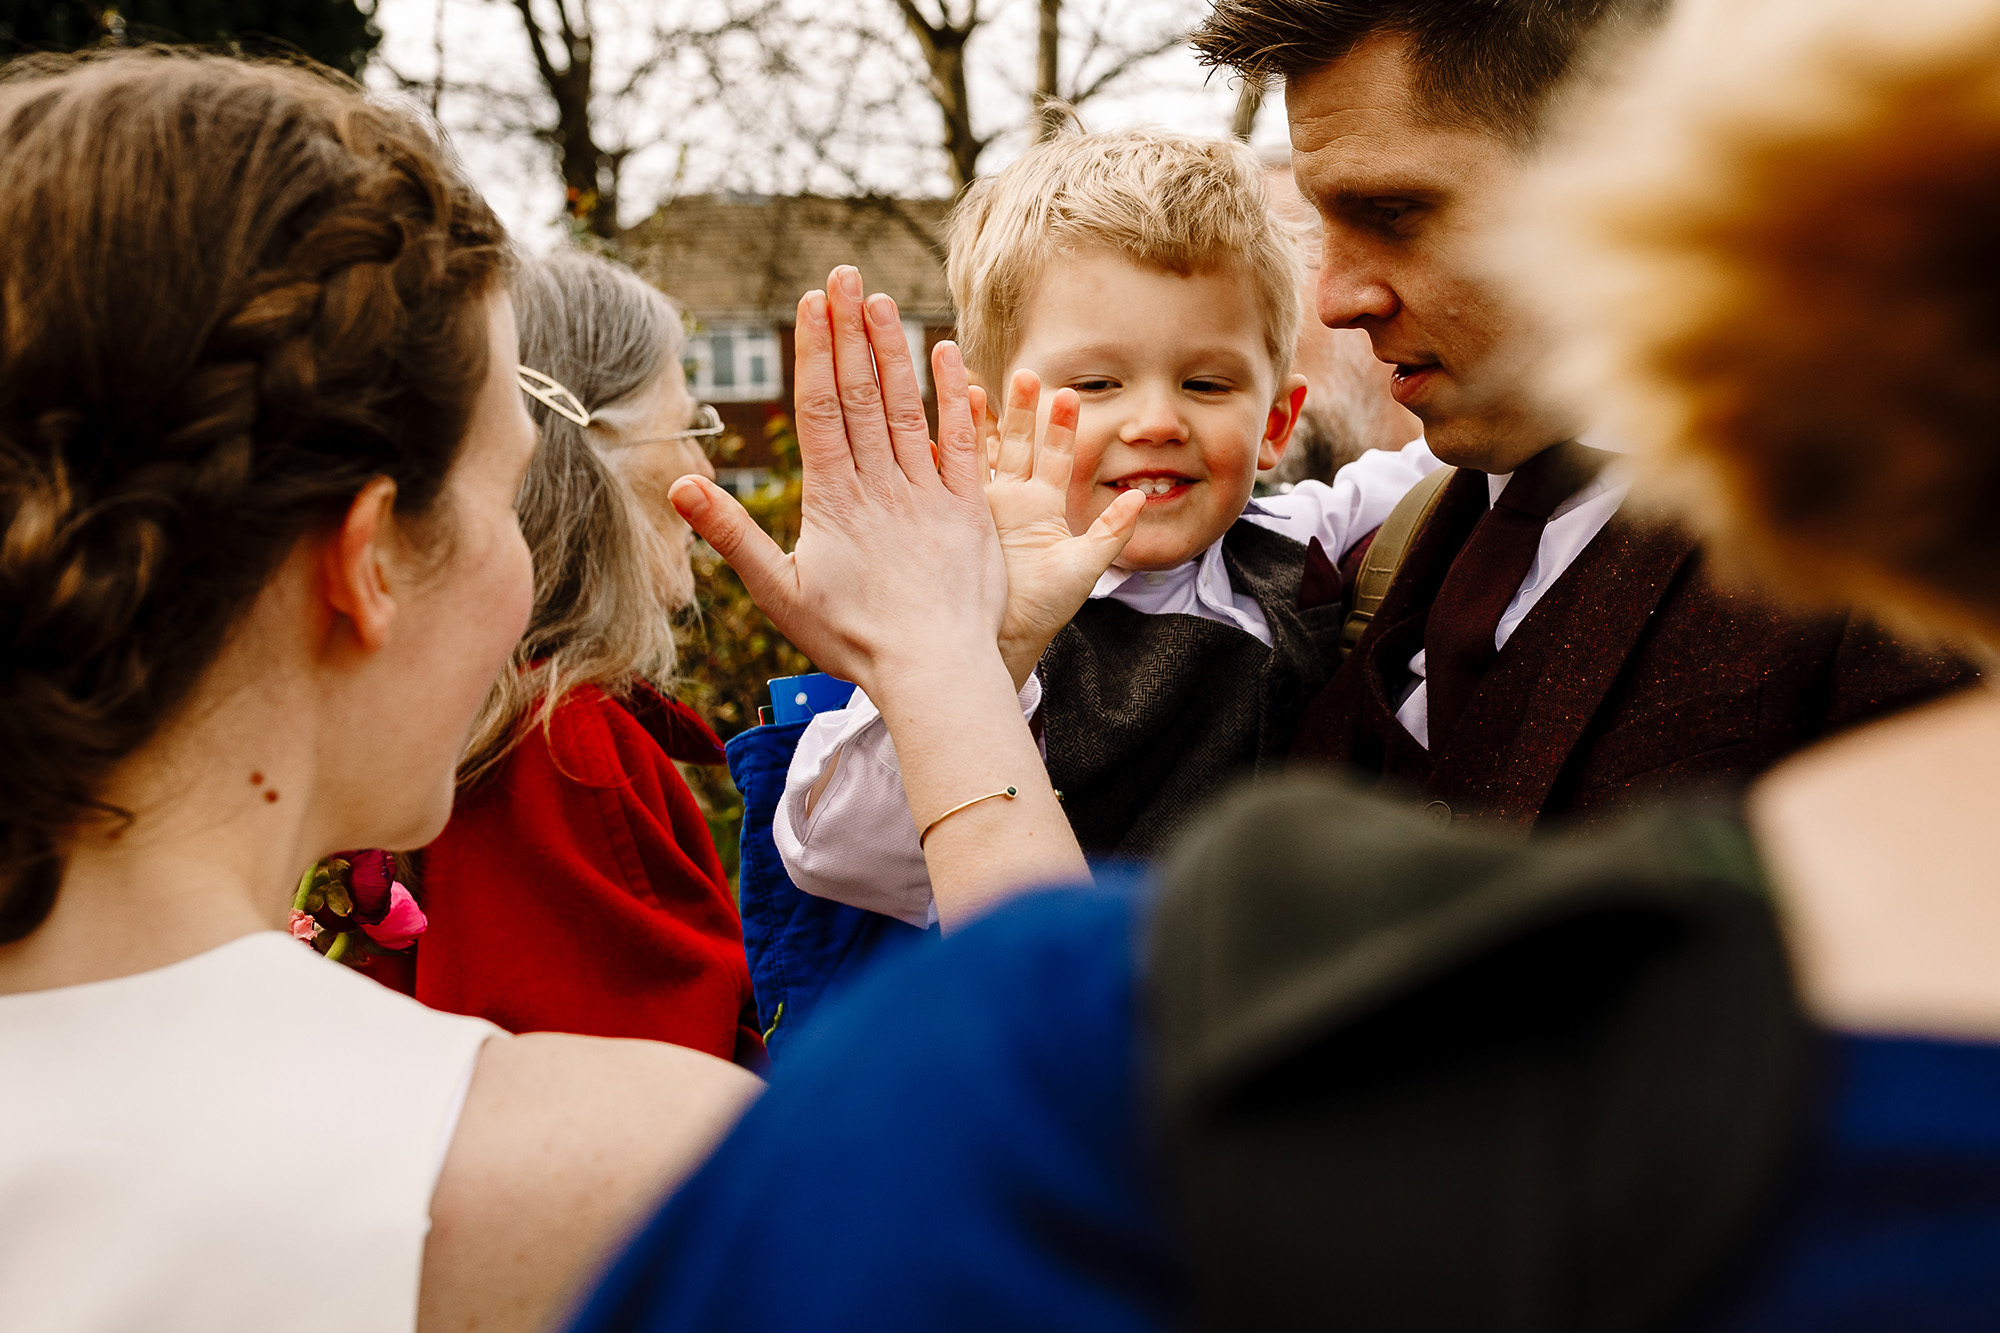 A bride high fiving a little boy